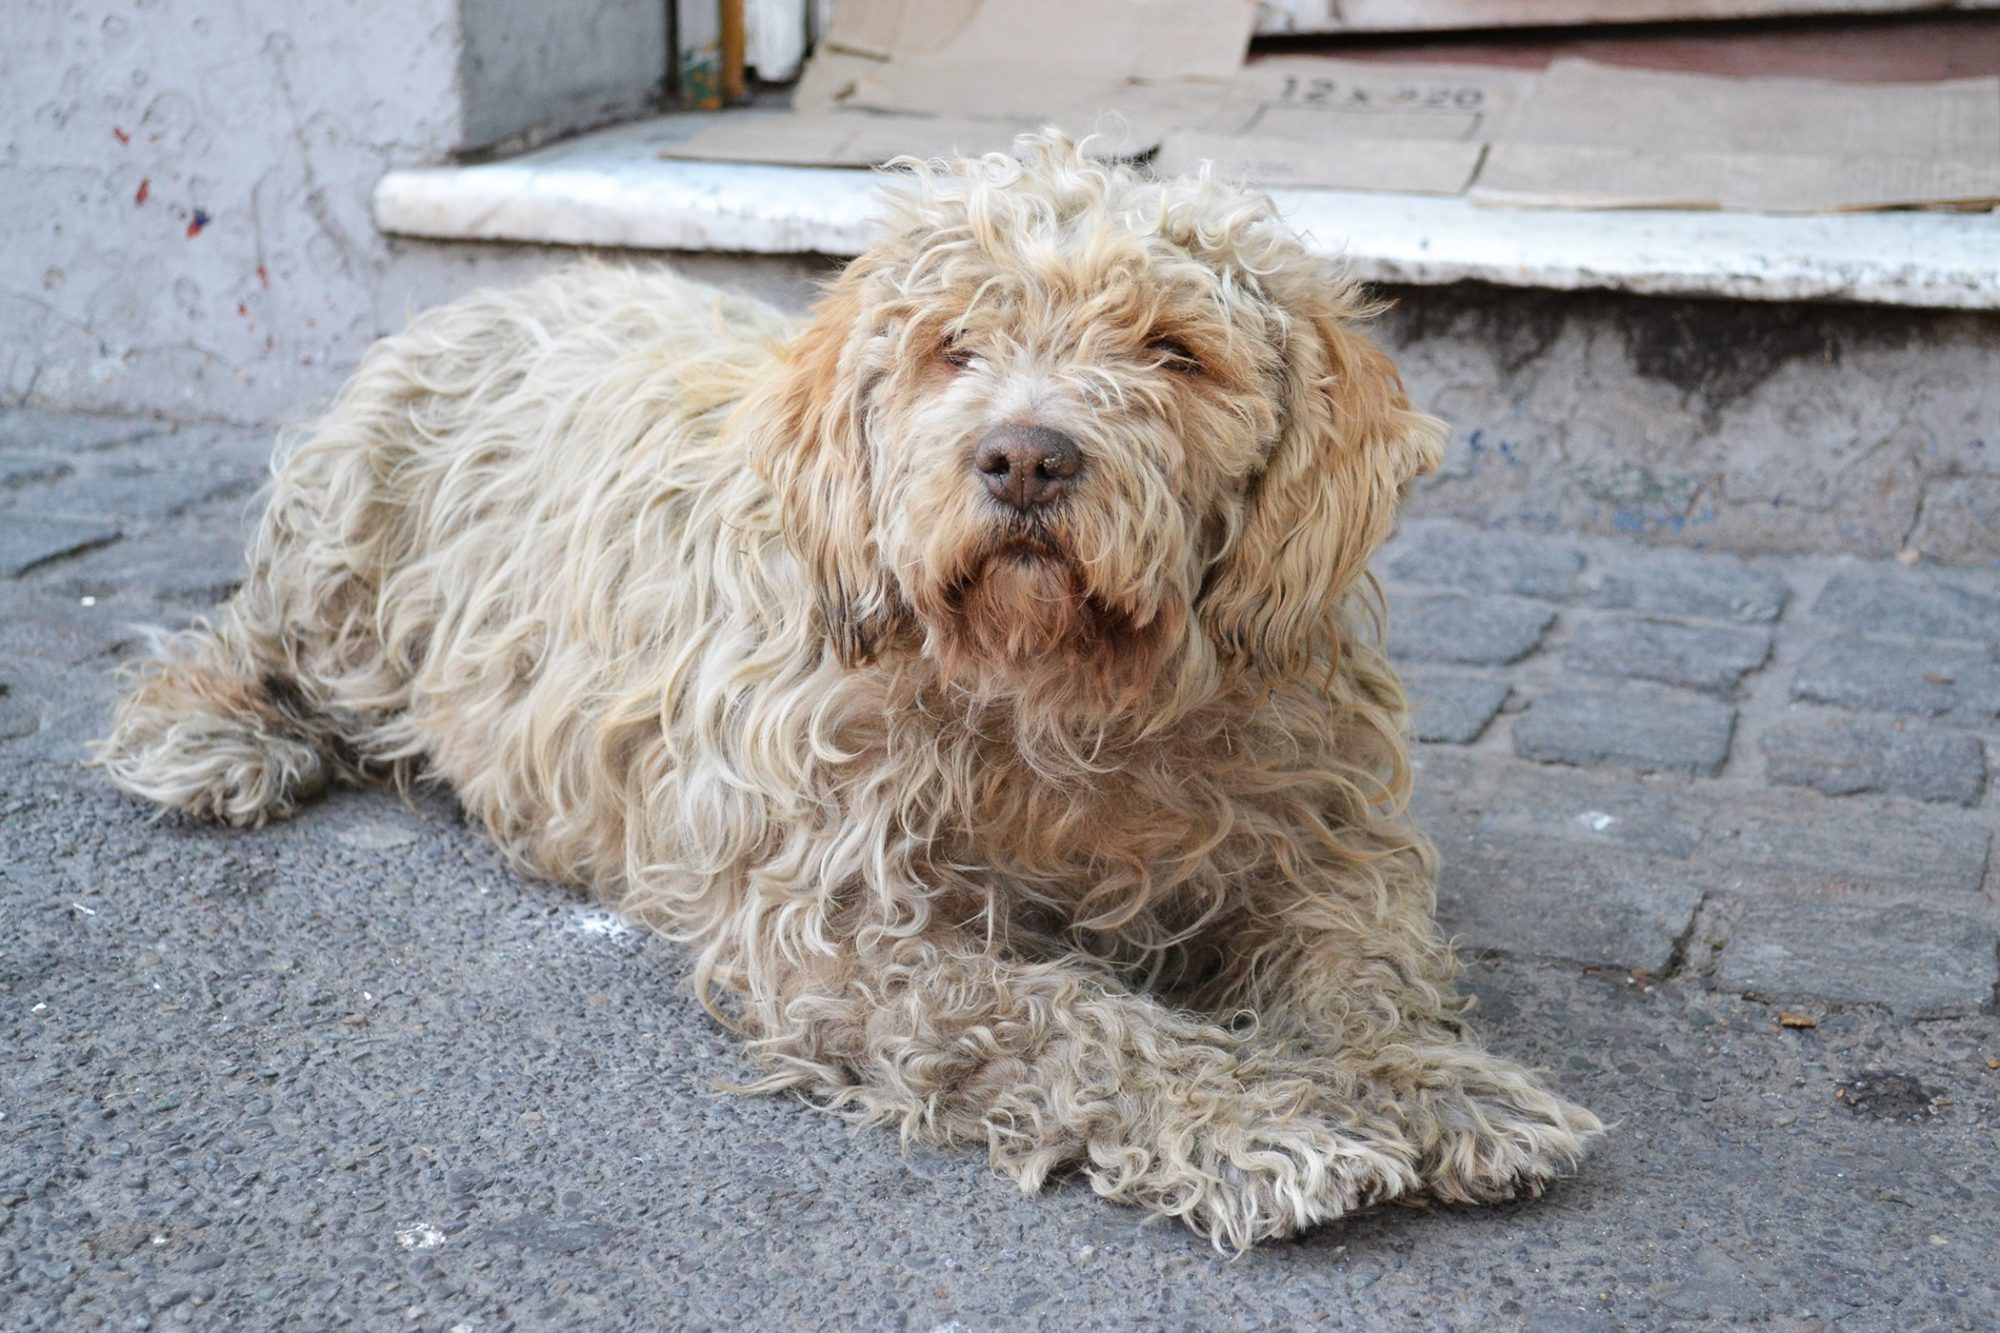 shaggy dog laying on sidewalk